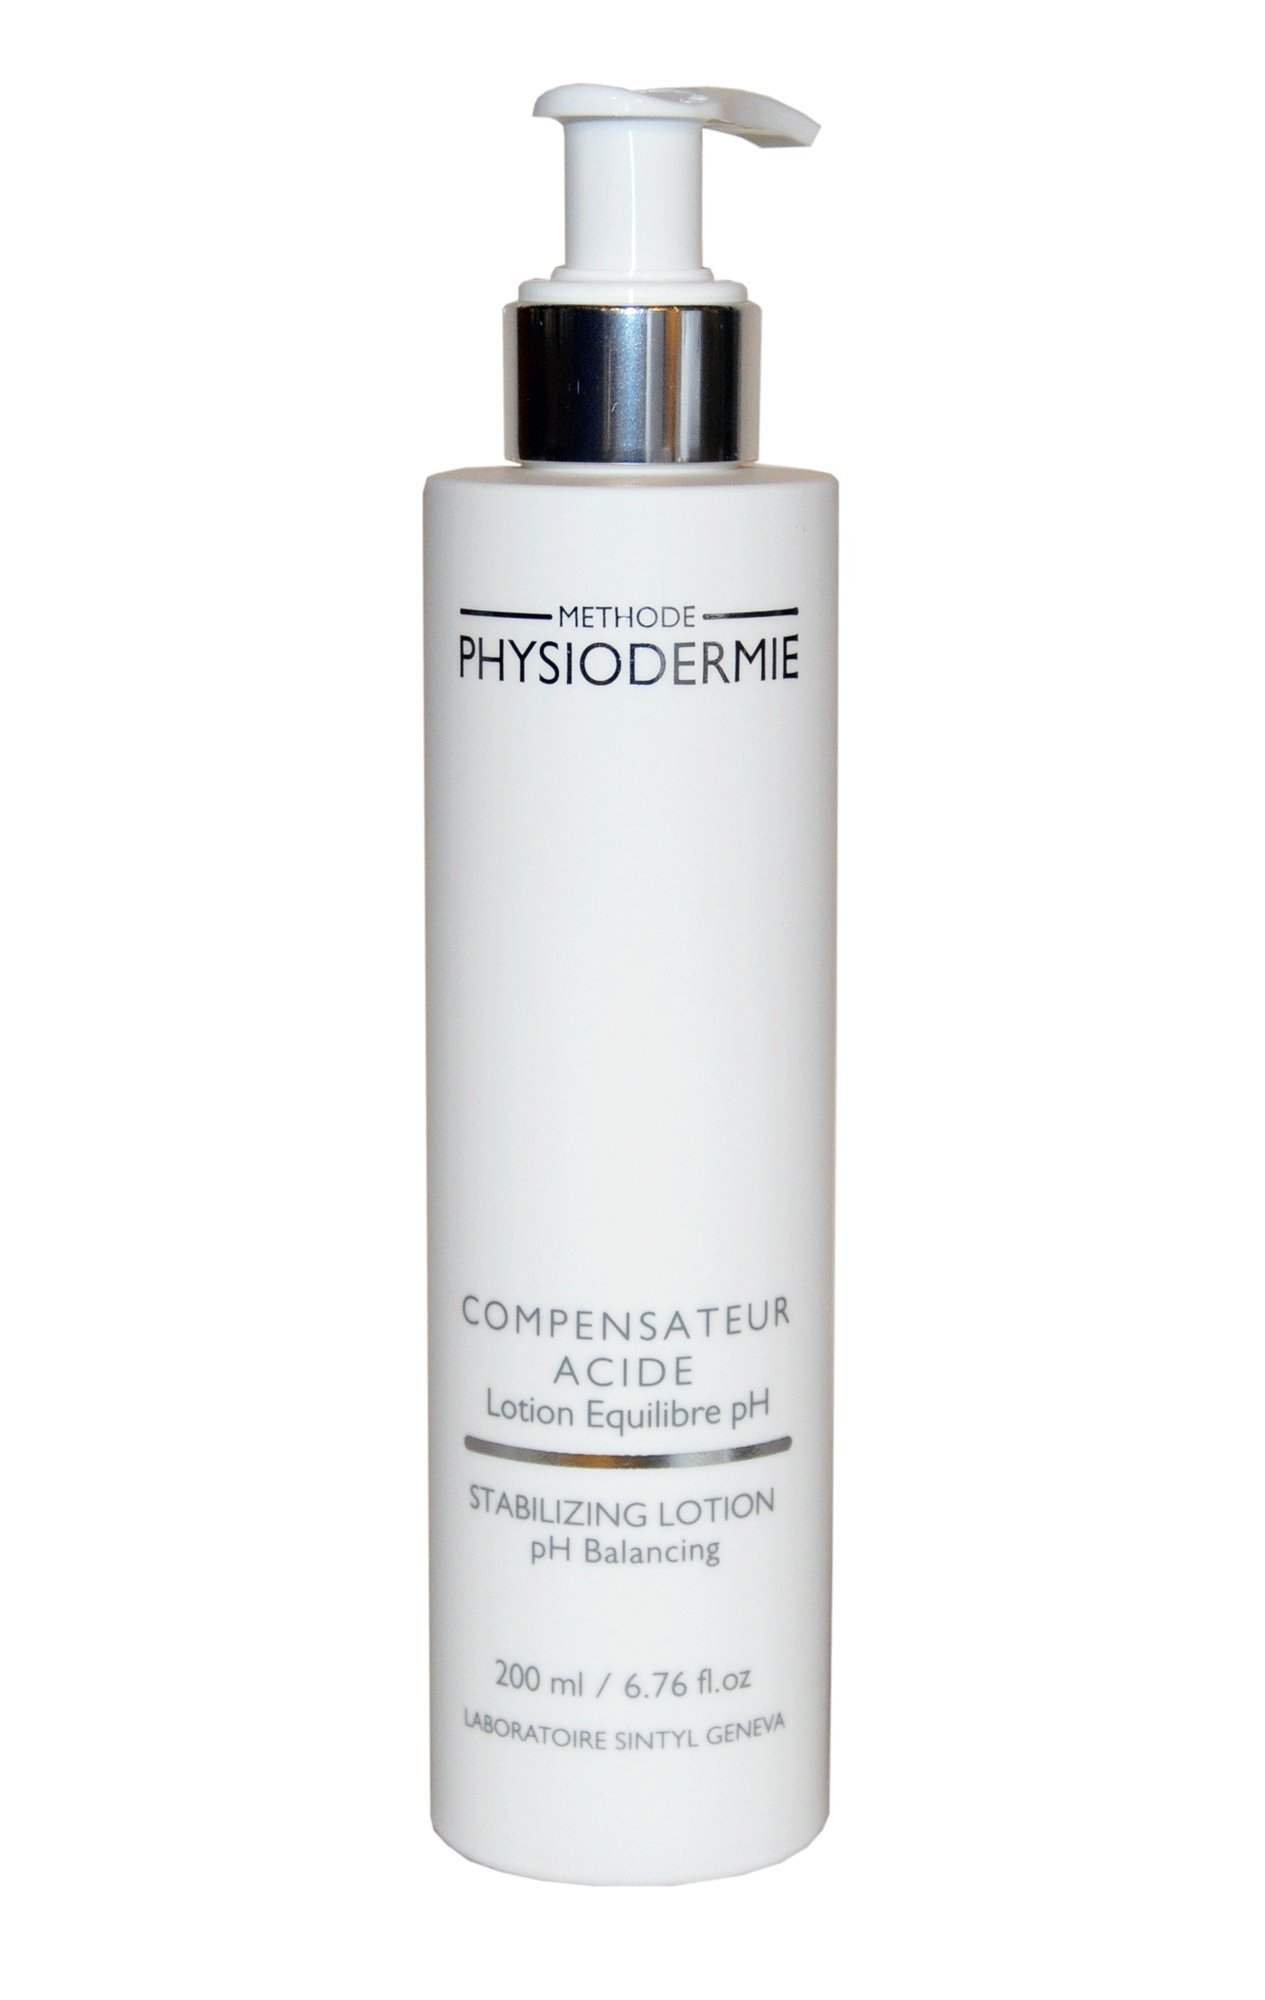 Physiodermie Stabilizing Lotion pH Balancing 6.76 fl.oz - BRAND NEW by Methode Physiodermie